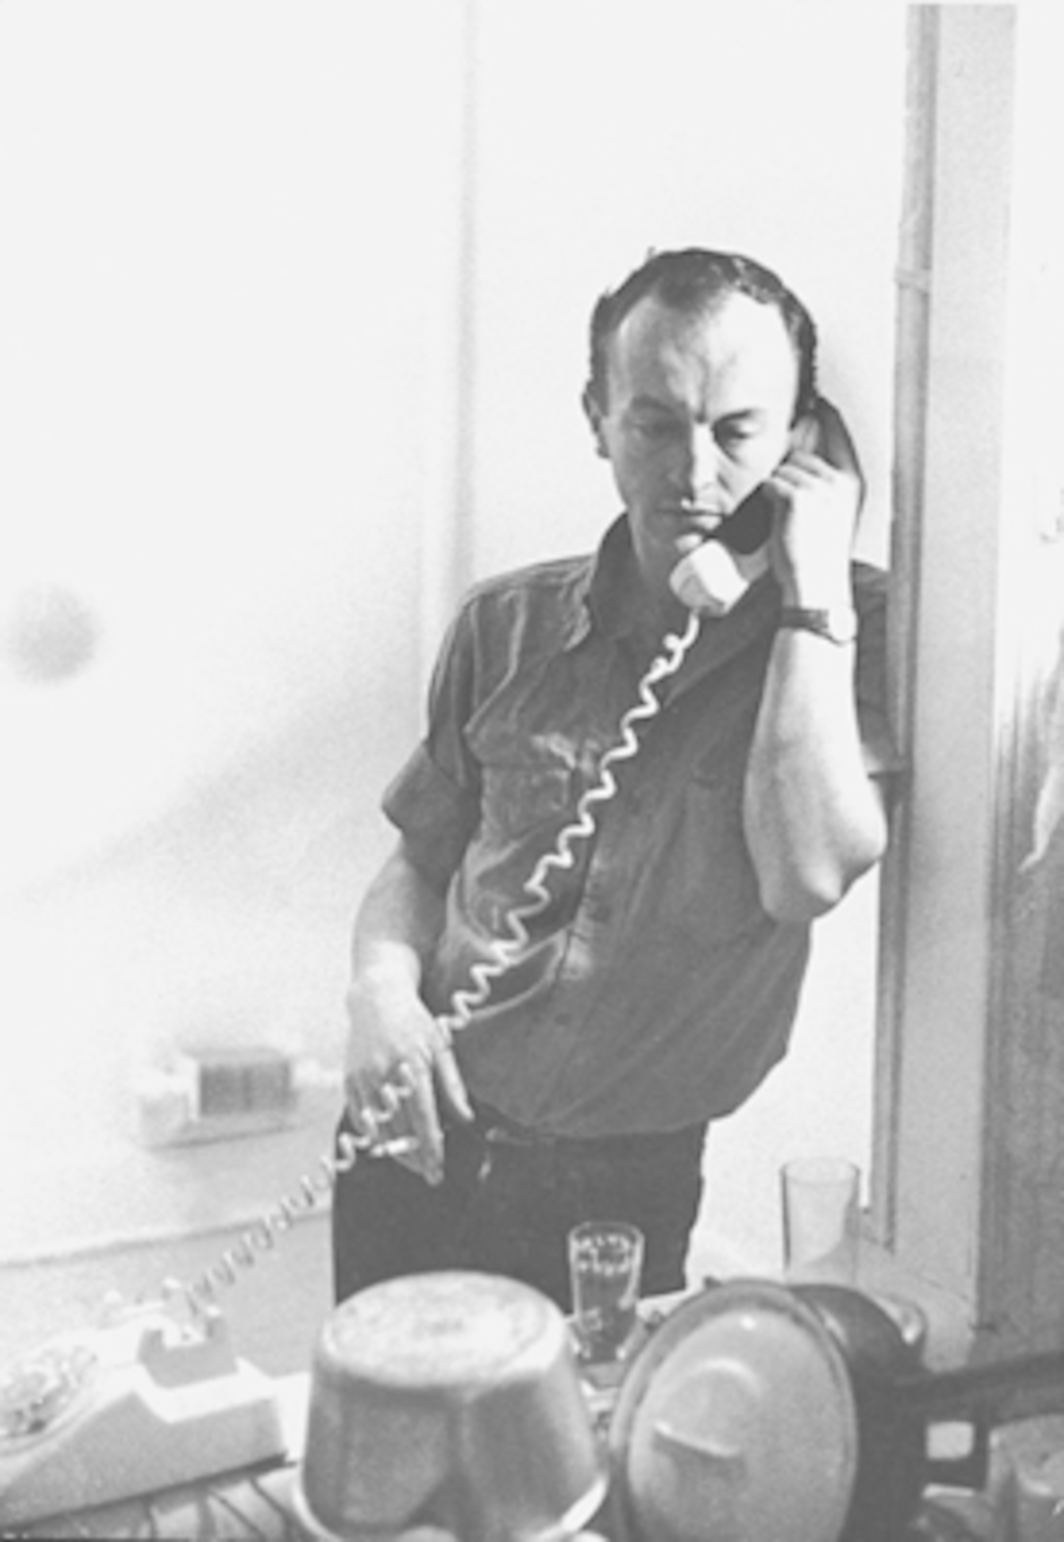 Frank O'Hara in his home, New York, 1965. Photo: Mario Schifano. Courtesy the Estate of Joe LeSueur.